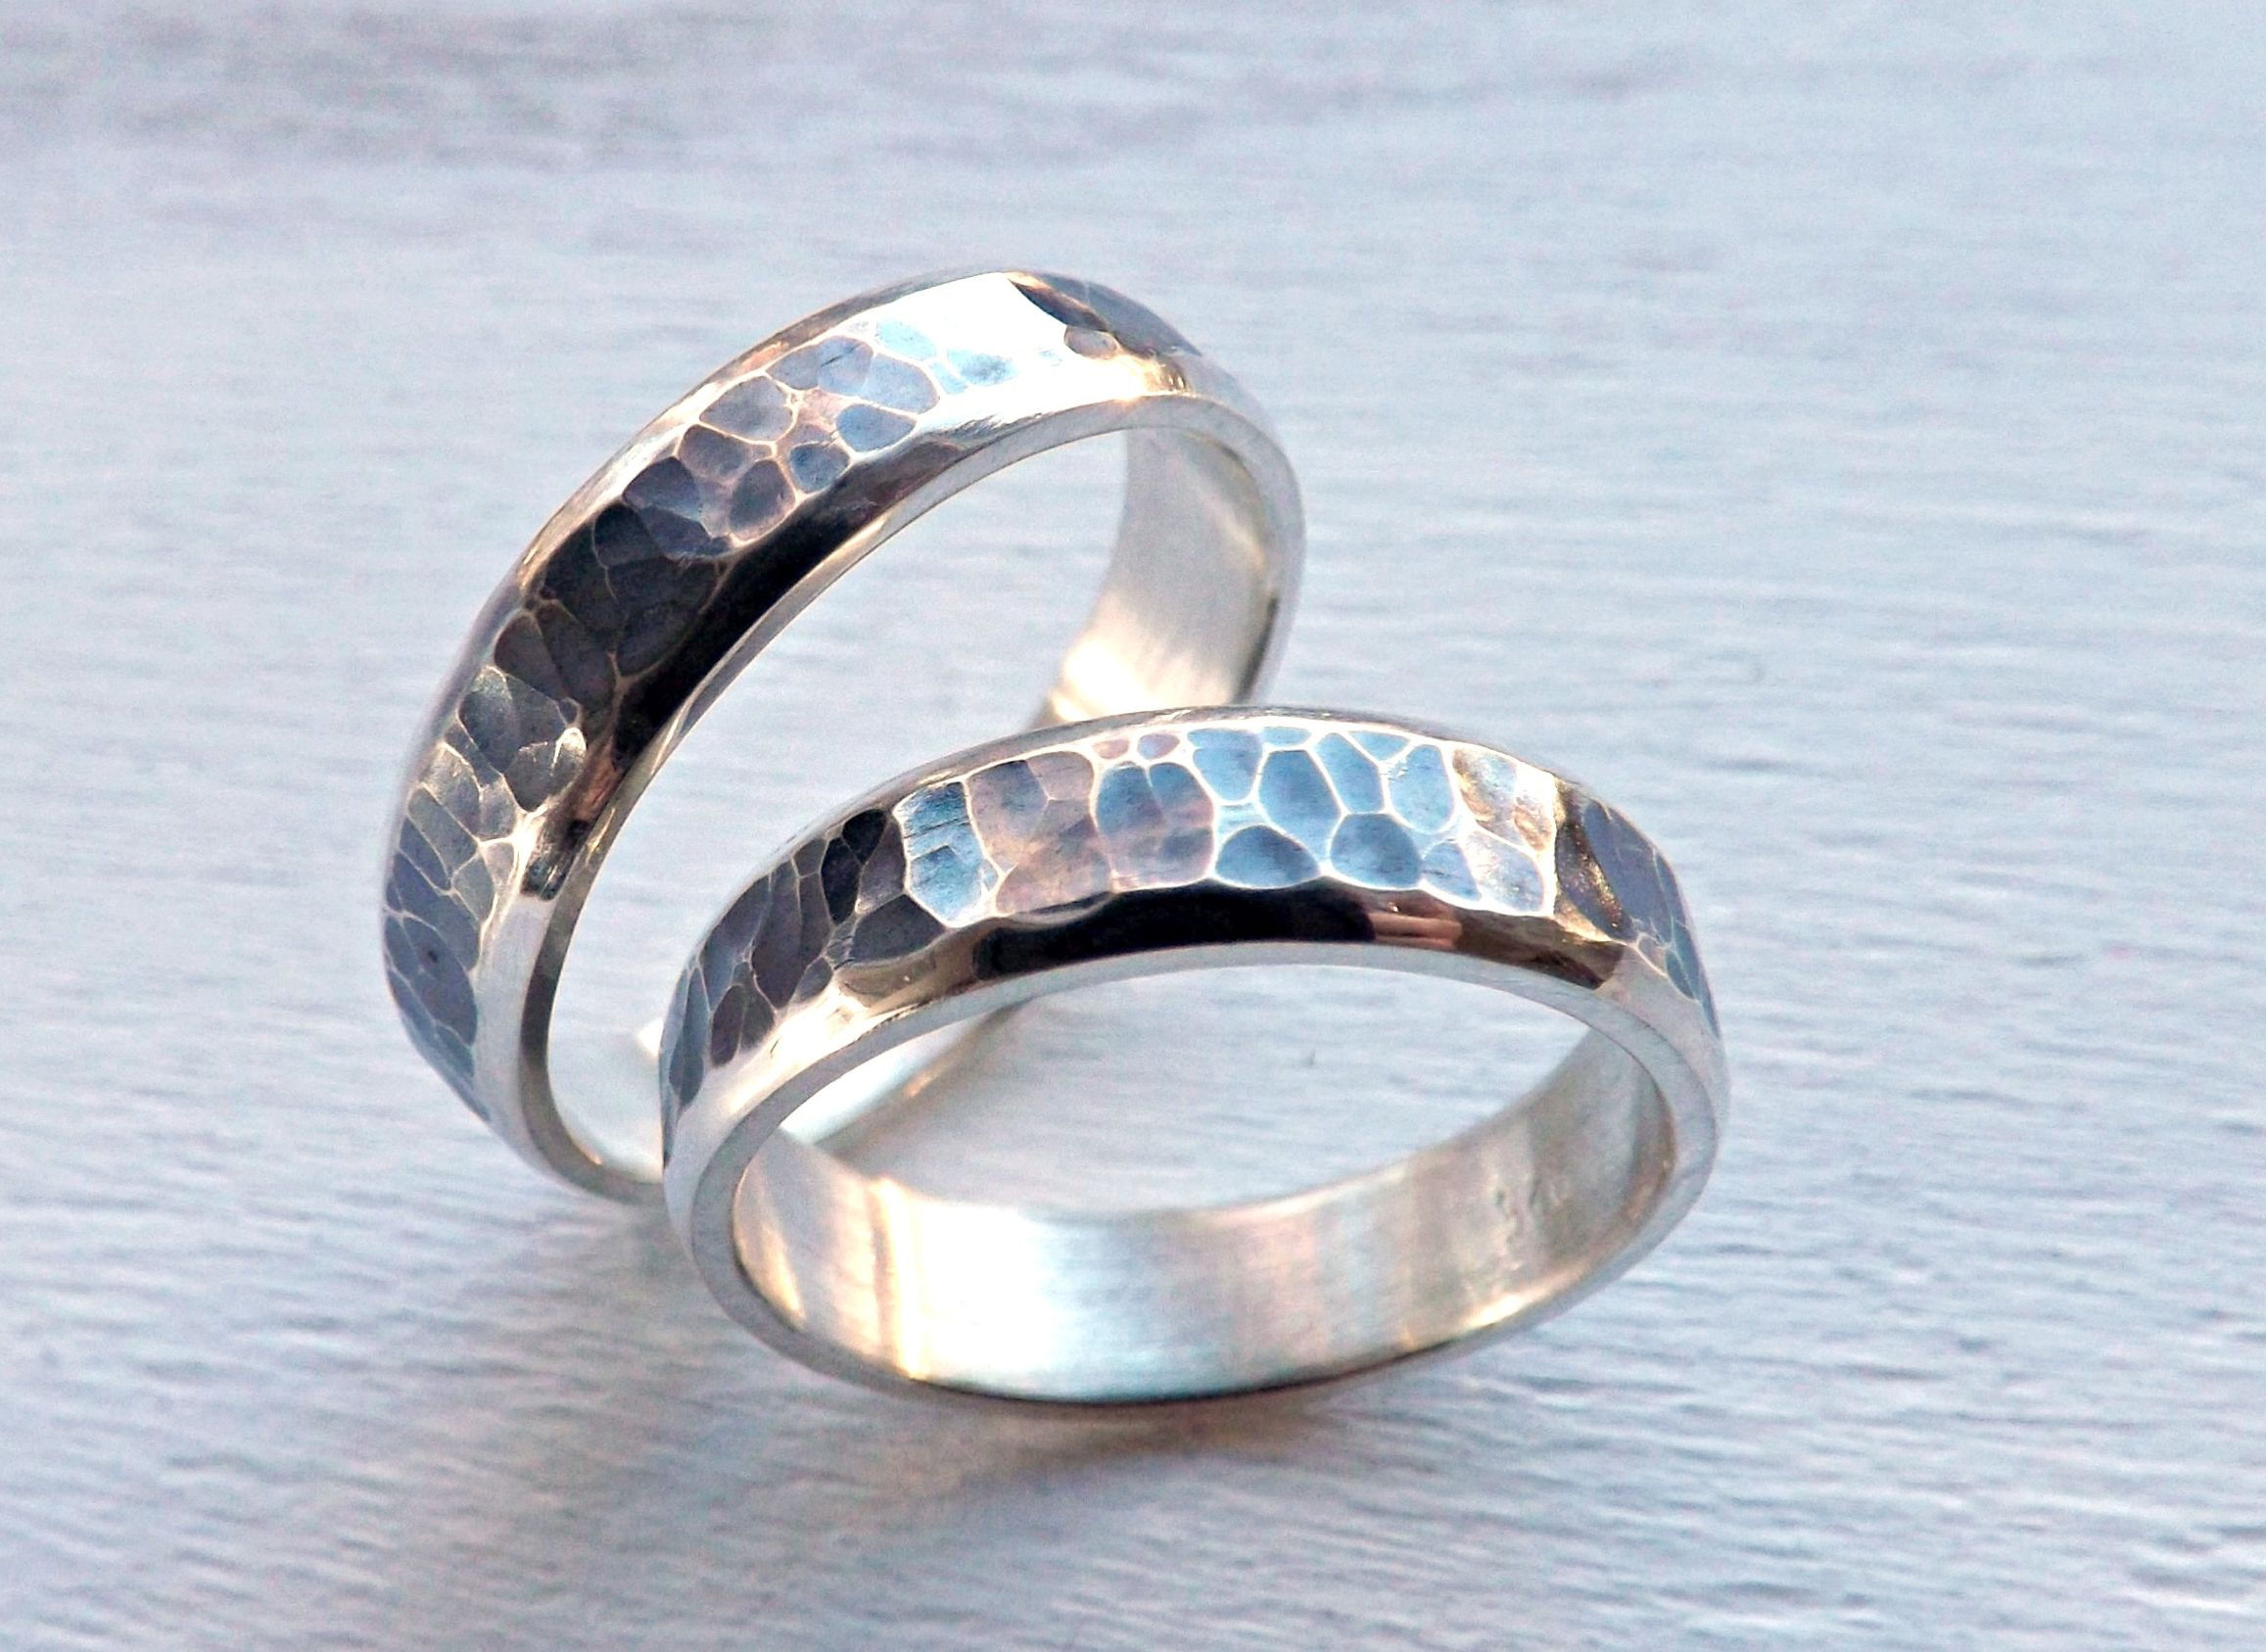 custom made rustic wedding ring set silver matching promise rings partially oxidized silver - Rustic Wedding Rings